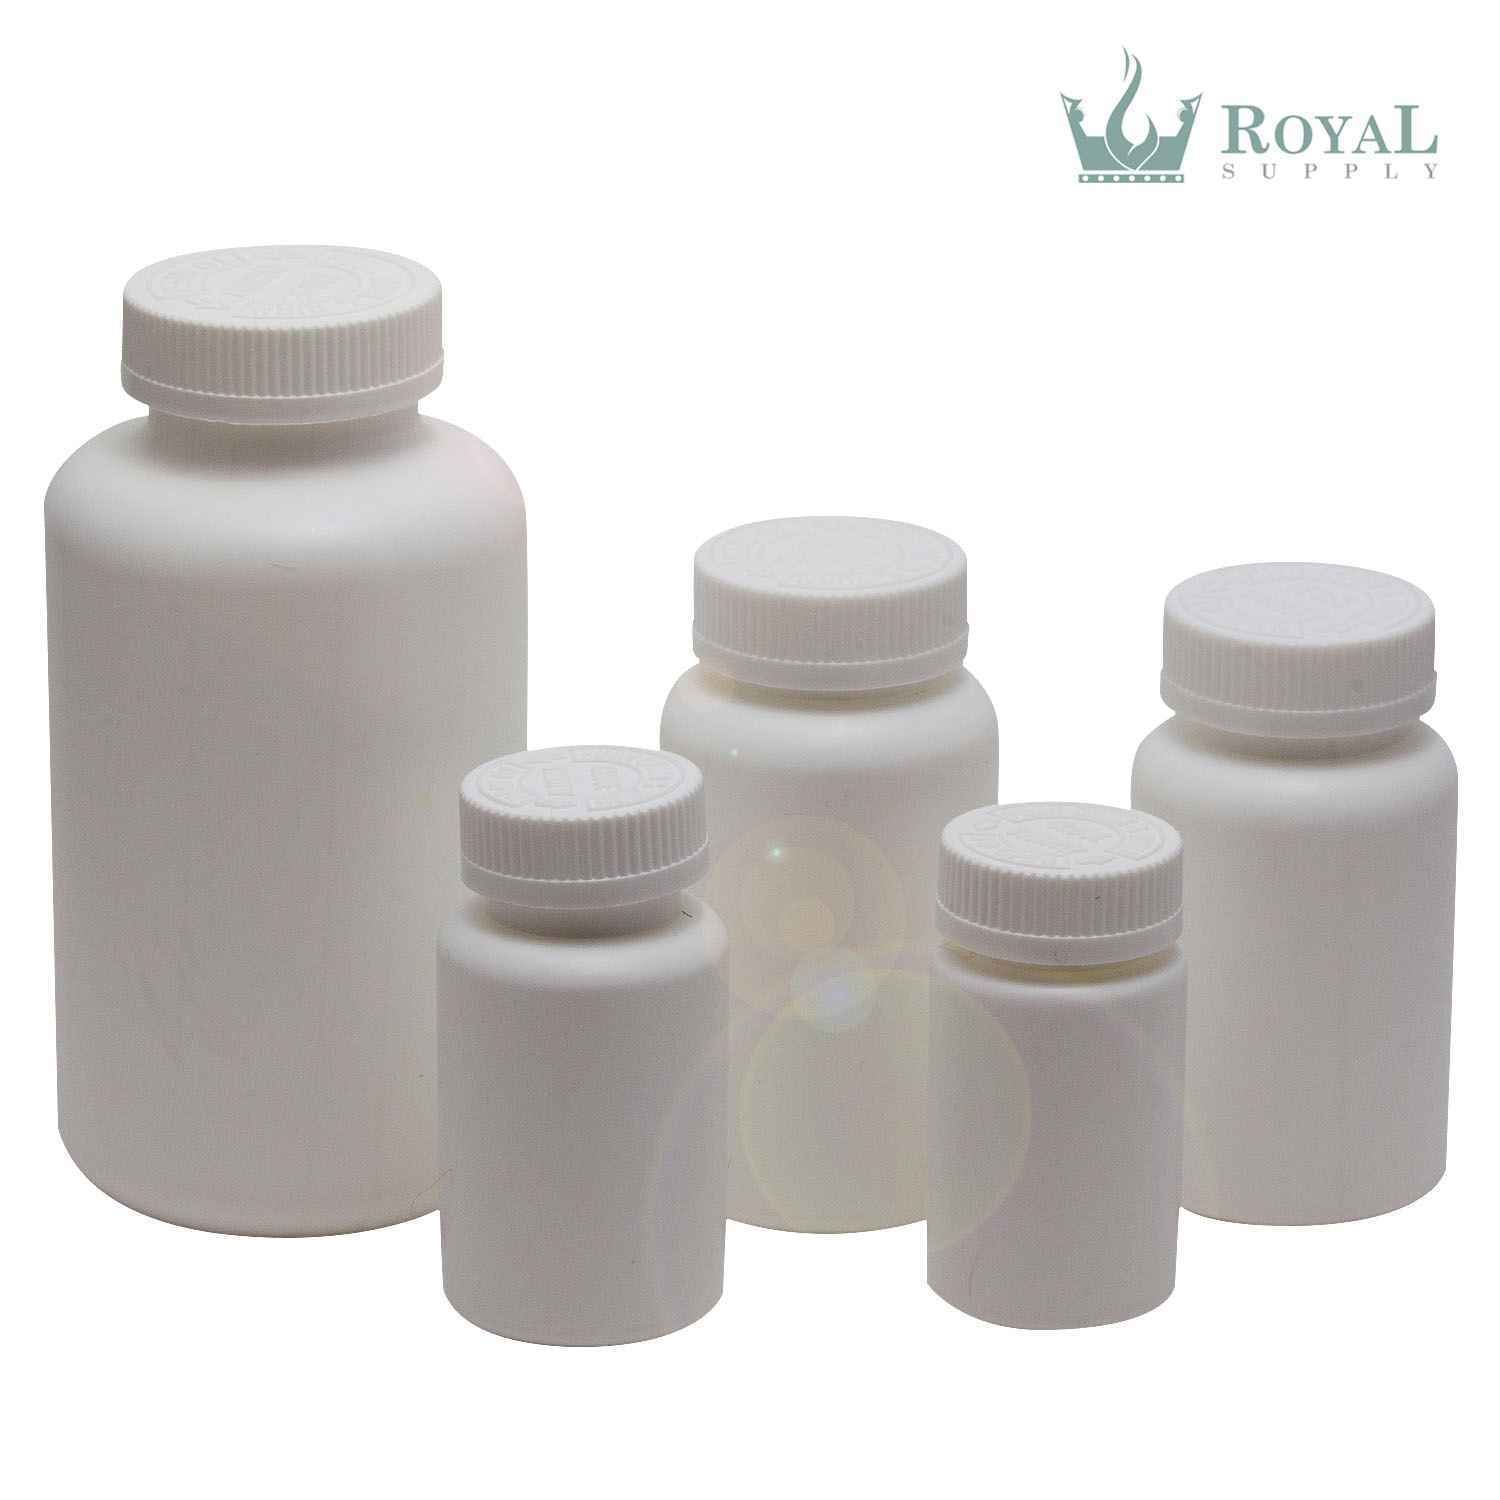 750cc Mega Vial Pill Bottle Container